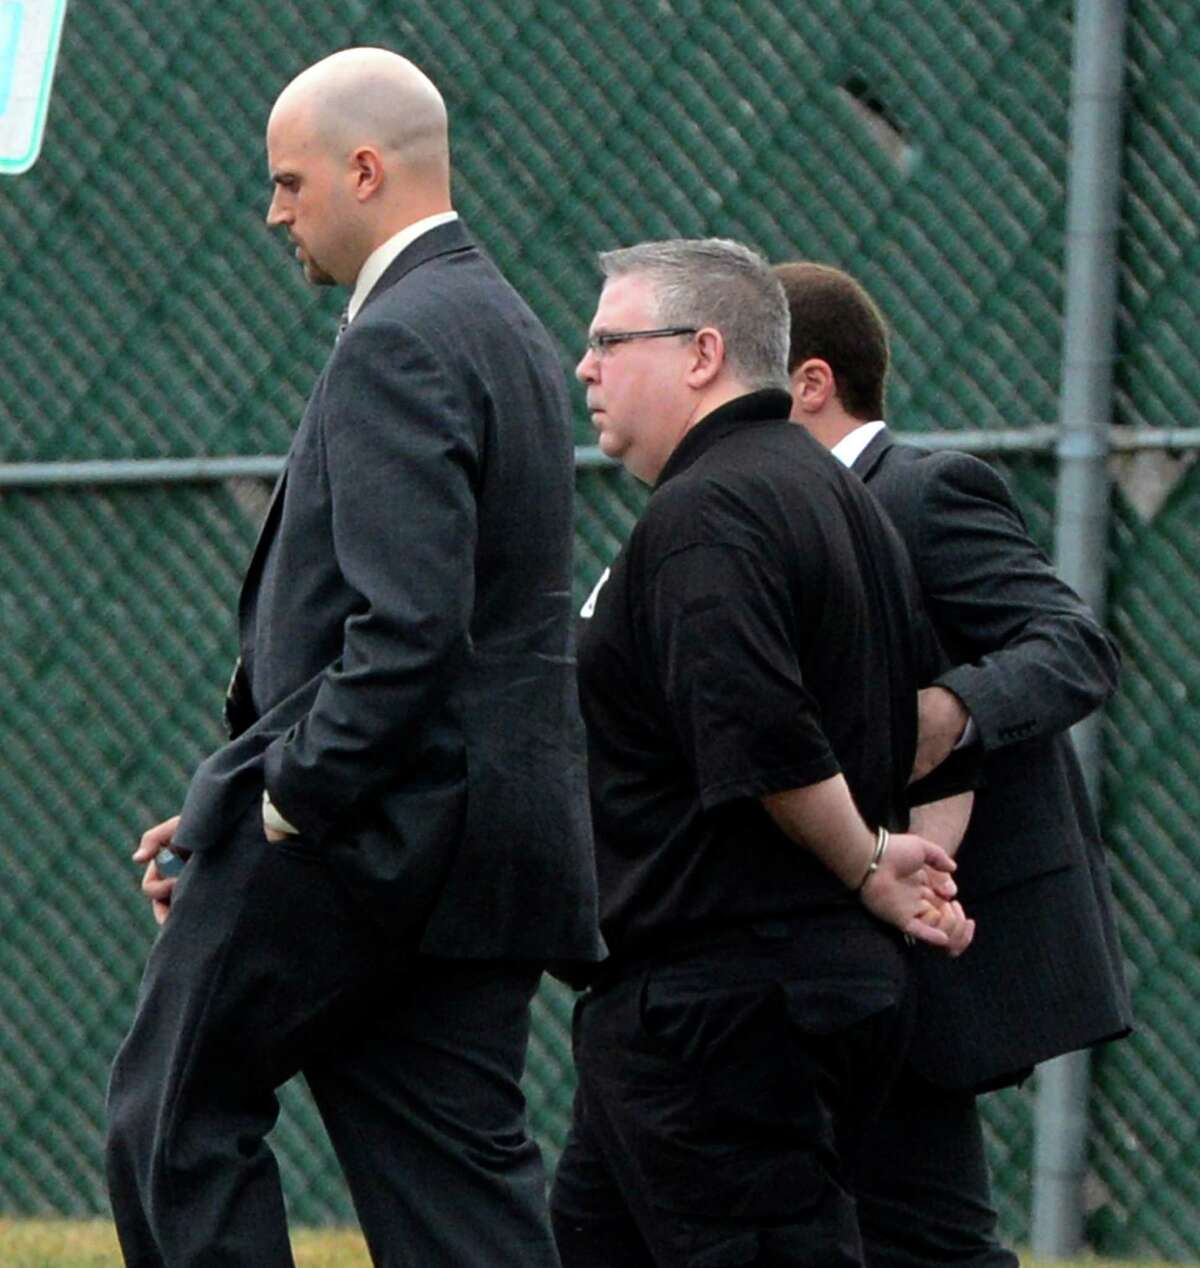 Albany County corrections officer James Cerniglia is escorted out of Albany County Jail after being arrested Wednesday morning in April 10, 2013, in Colonie, N.Y. Cerniglia is accused of running a Capital Region bookmaking ring in which bets and payoffs were routinely taking place at the jail. (Skip Dickstein/Times Union)